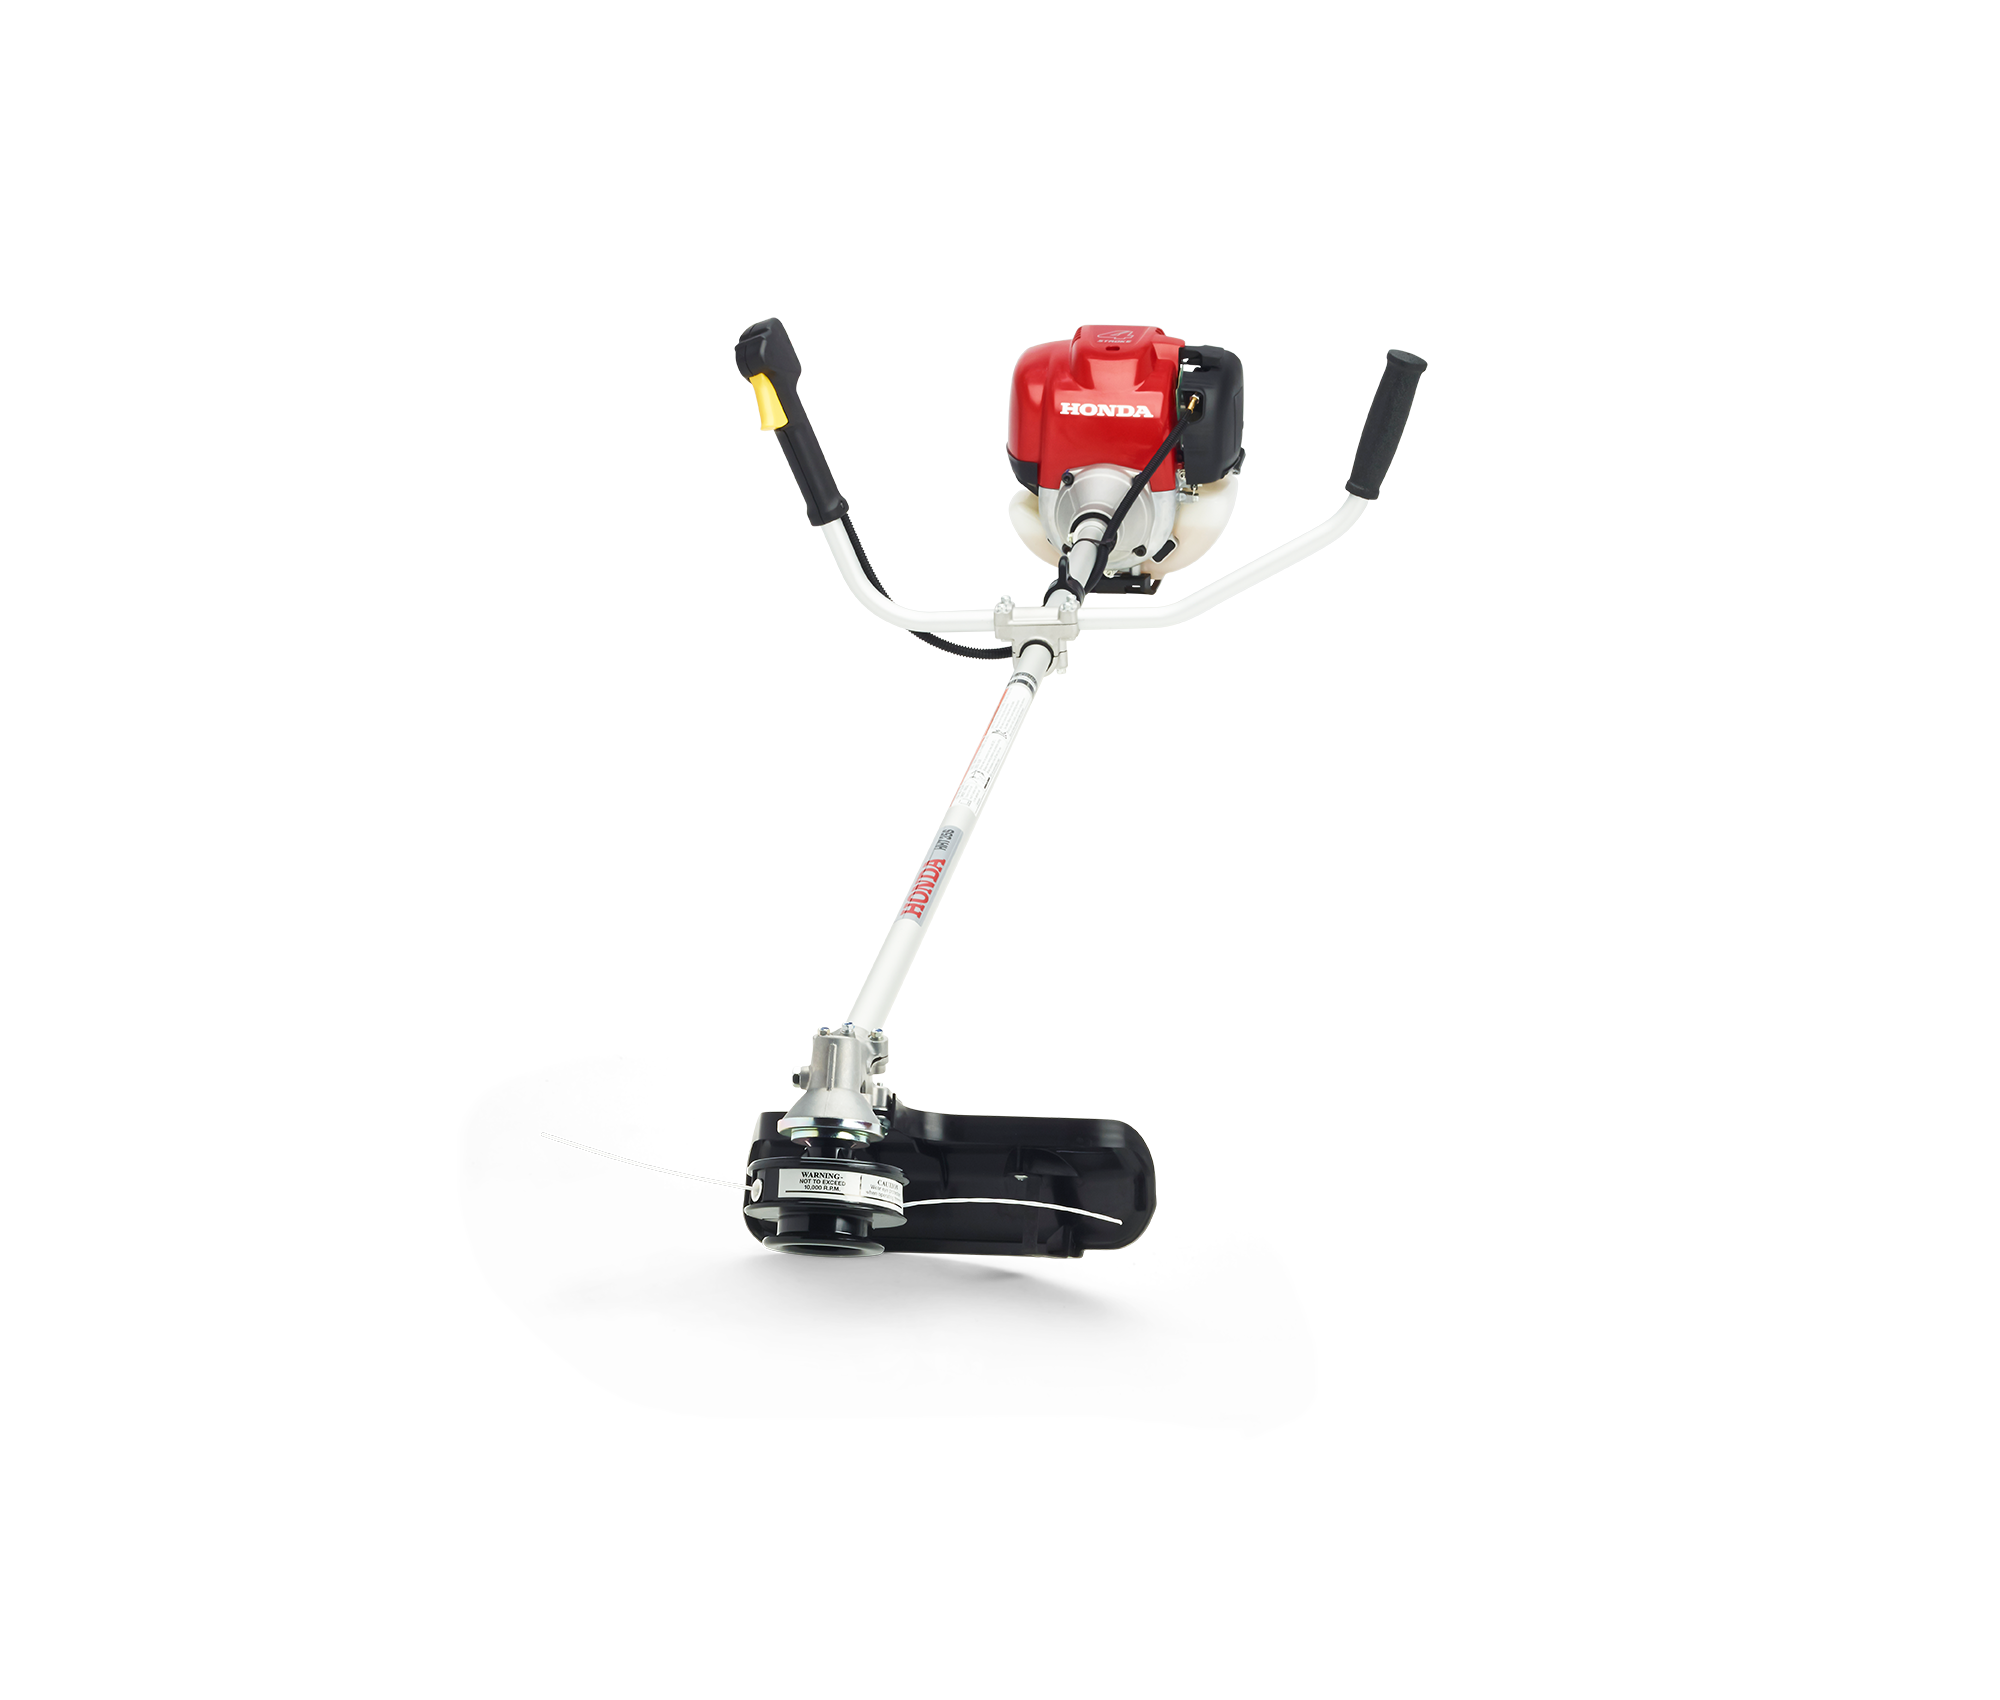 Image of the U Handle 35 cc brush cutter